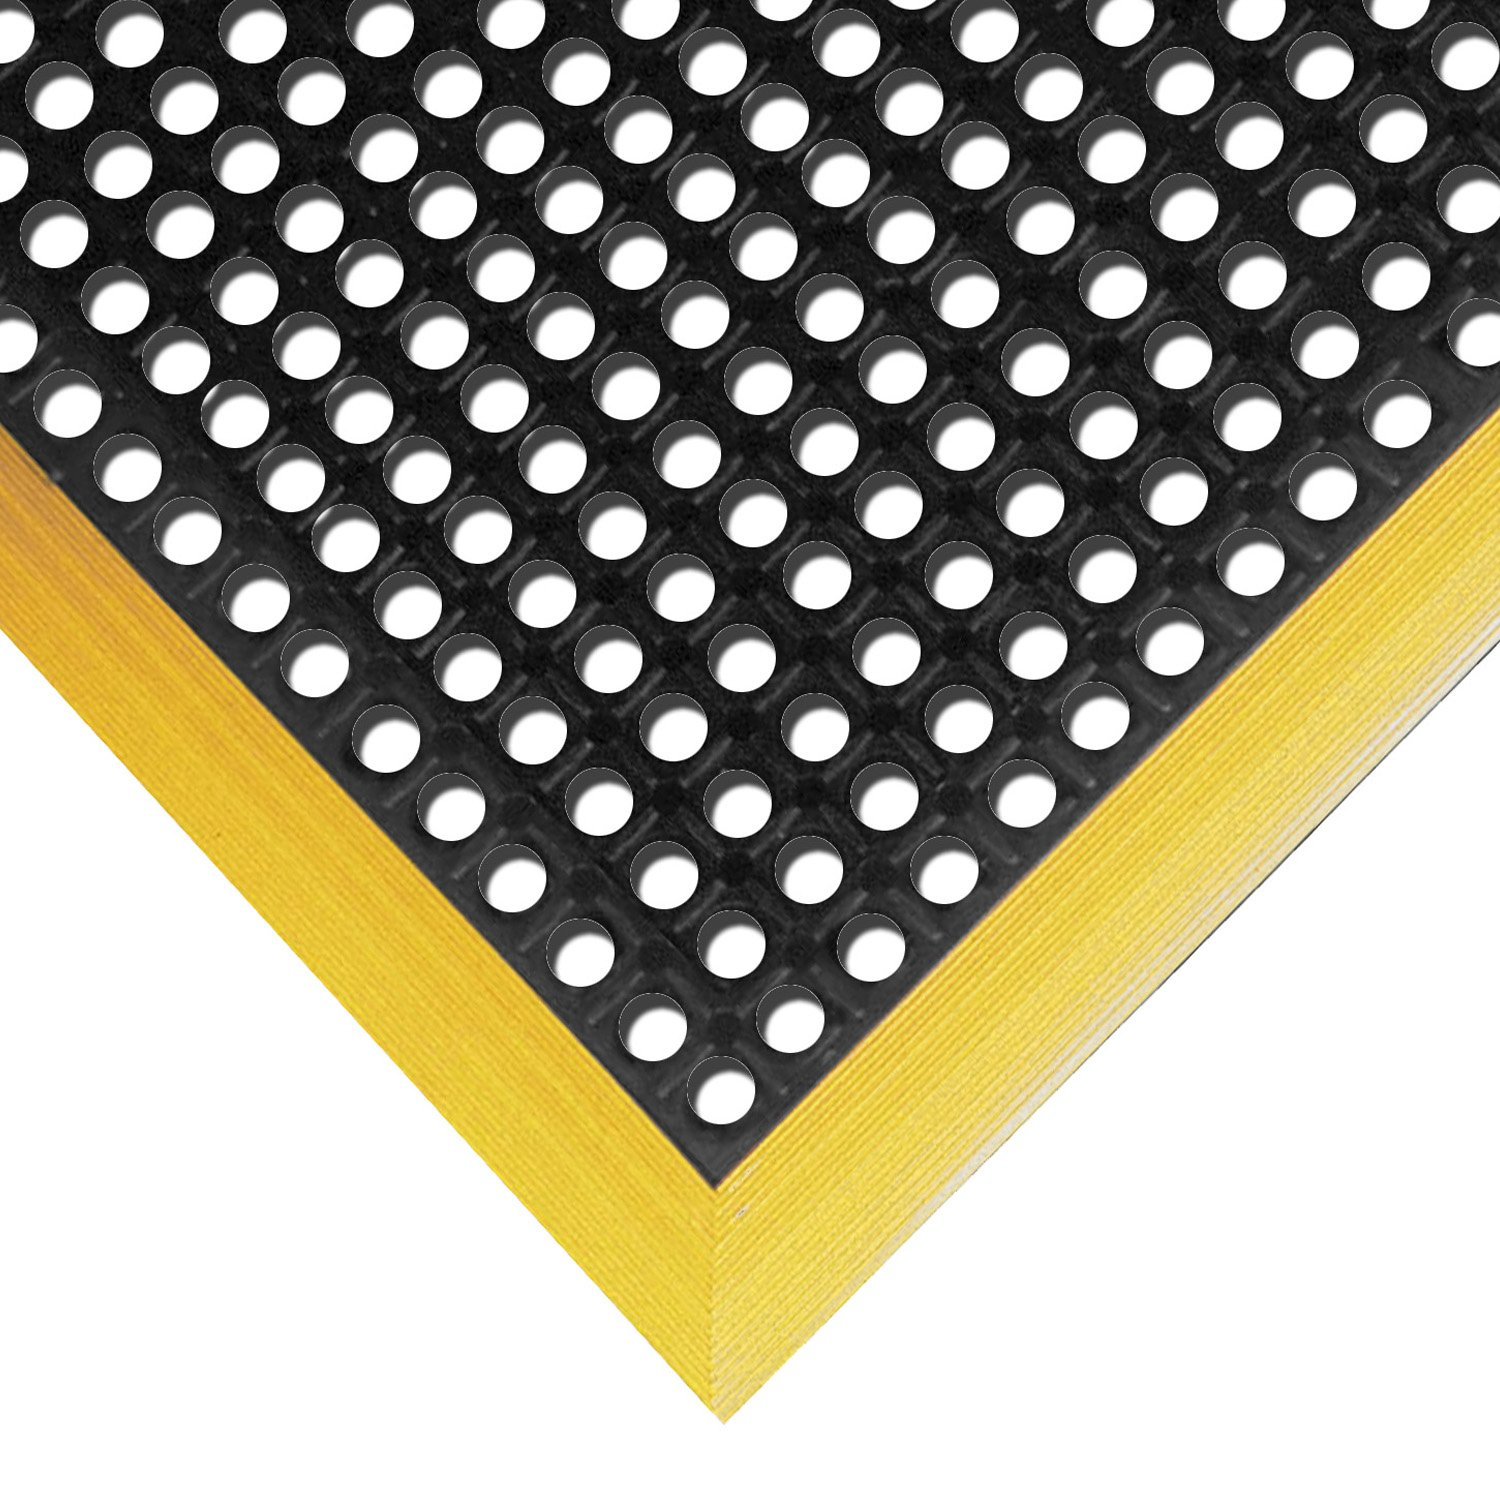 NoTrax Rubber 549 Safety Stance Anti-Fatigue Drainage Mat, for Wet Areas, 38'' Width x 64'' Length x 7/8'' Thickness, Black / Yellow